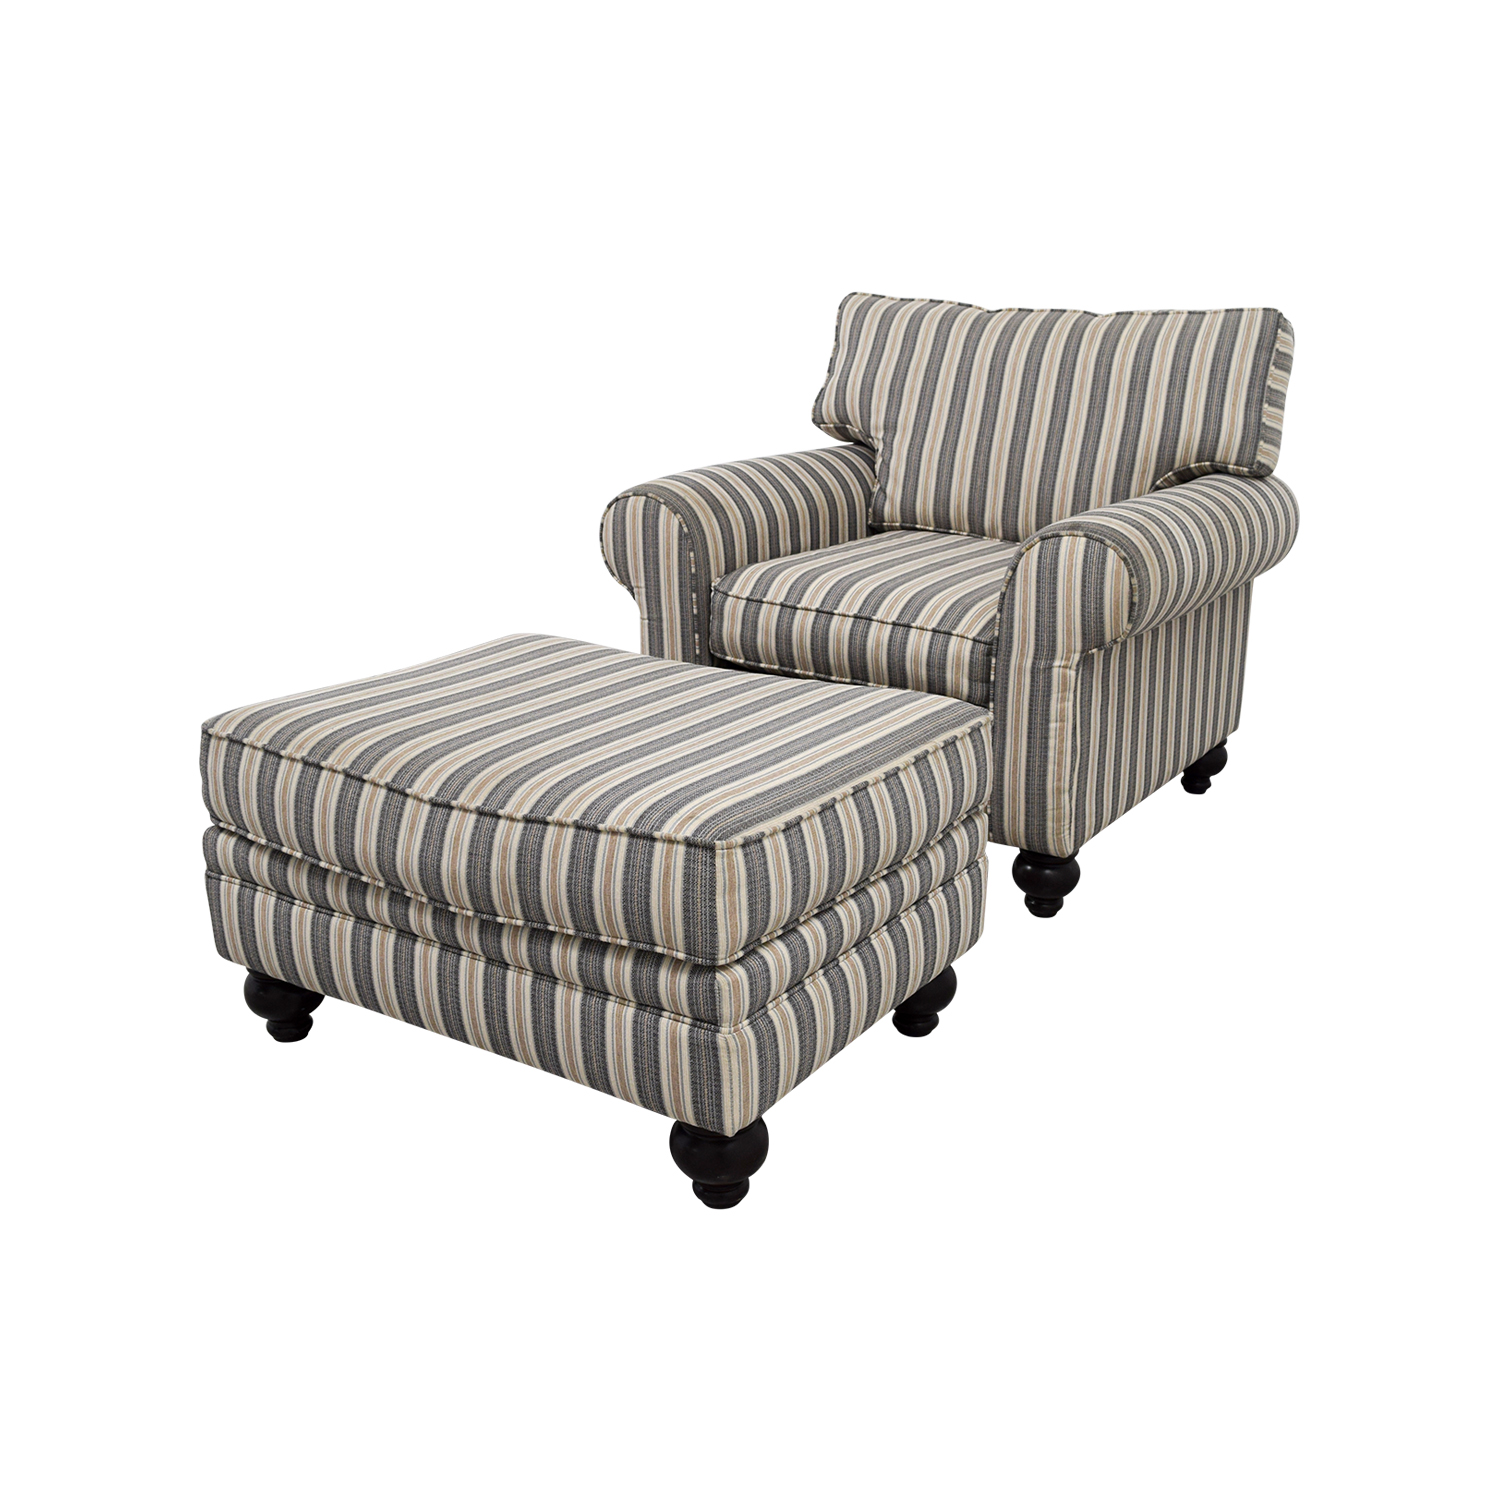 Bobs Furniture Sofa Chair With Ottoman Chairs